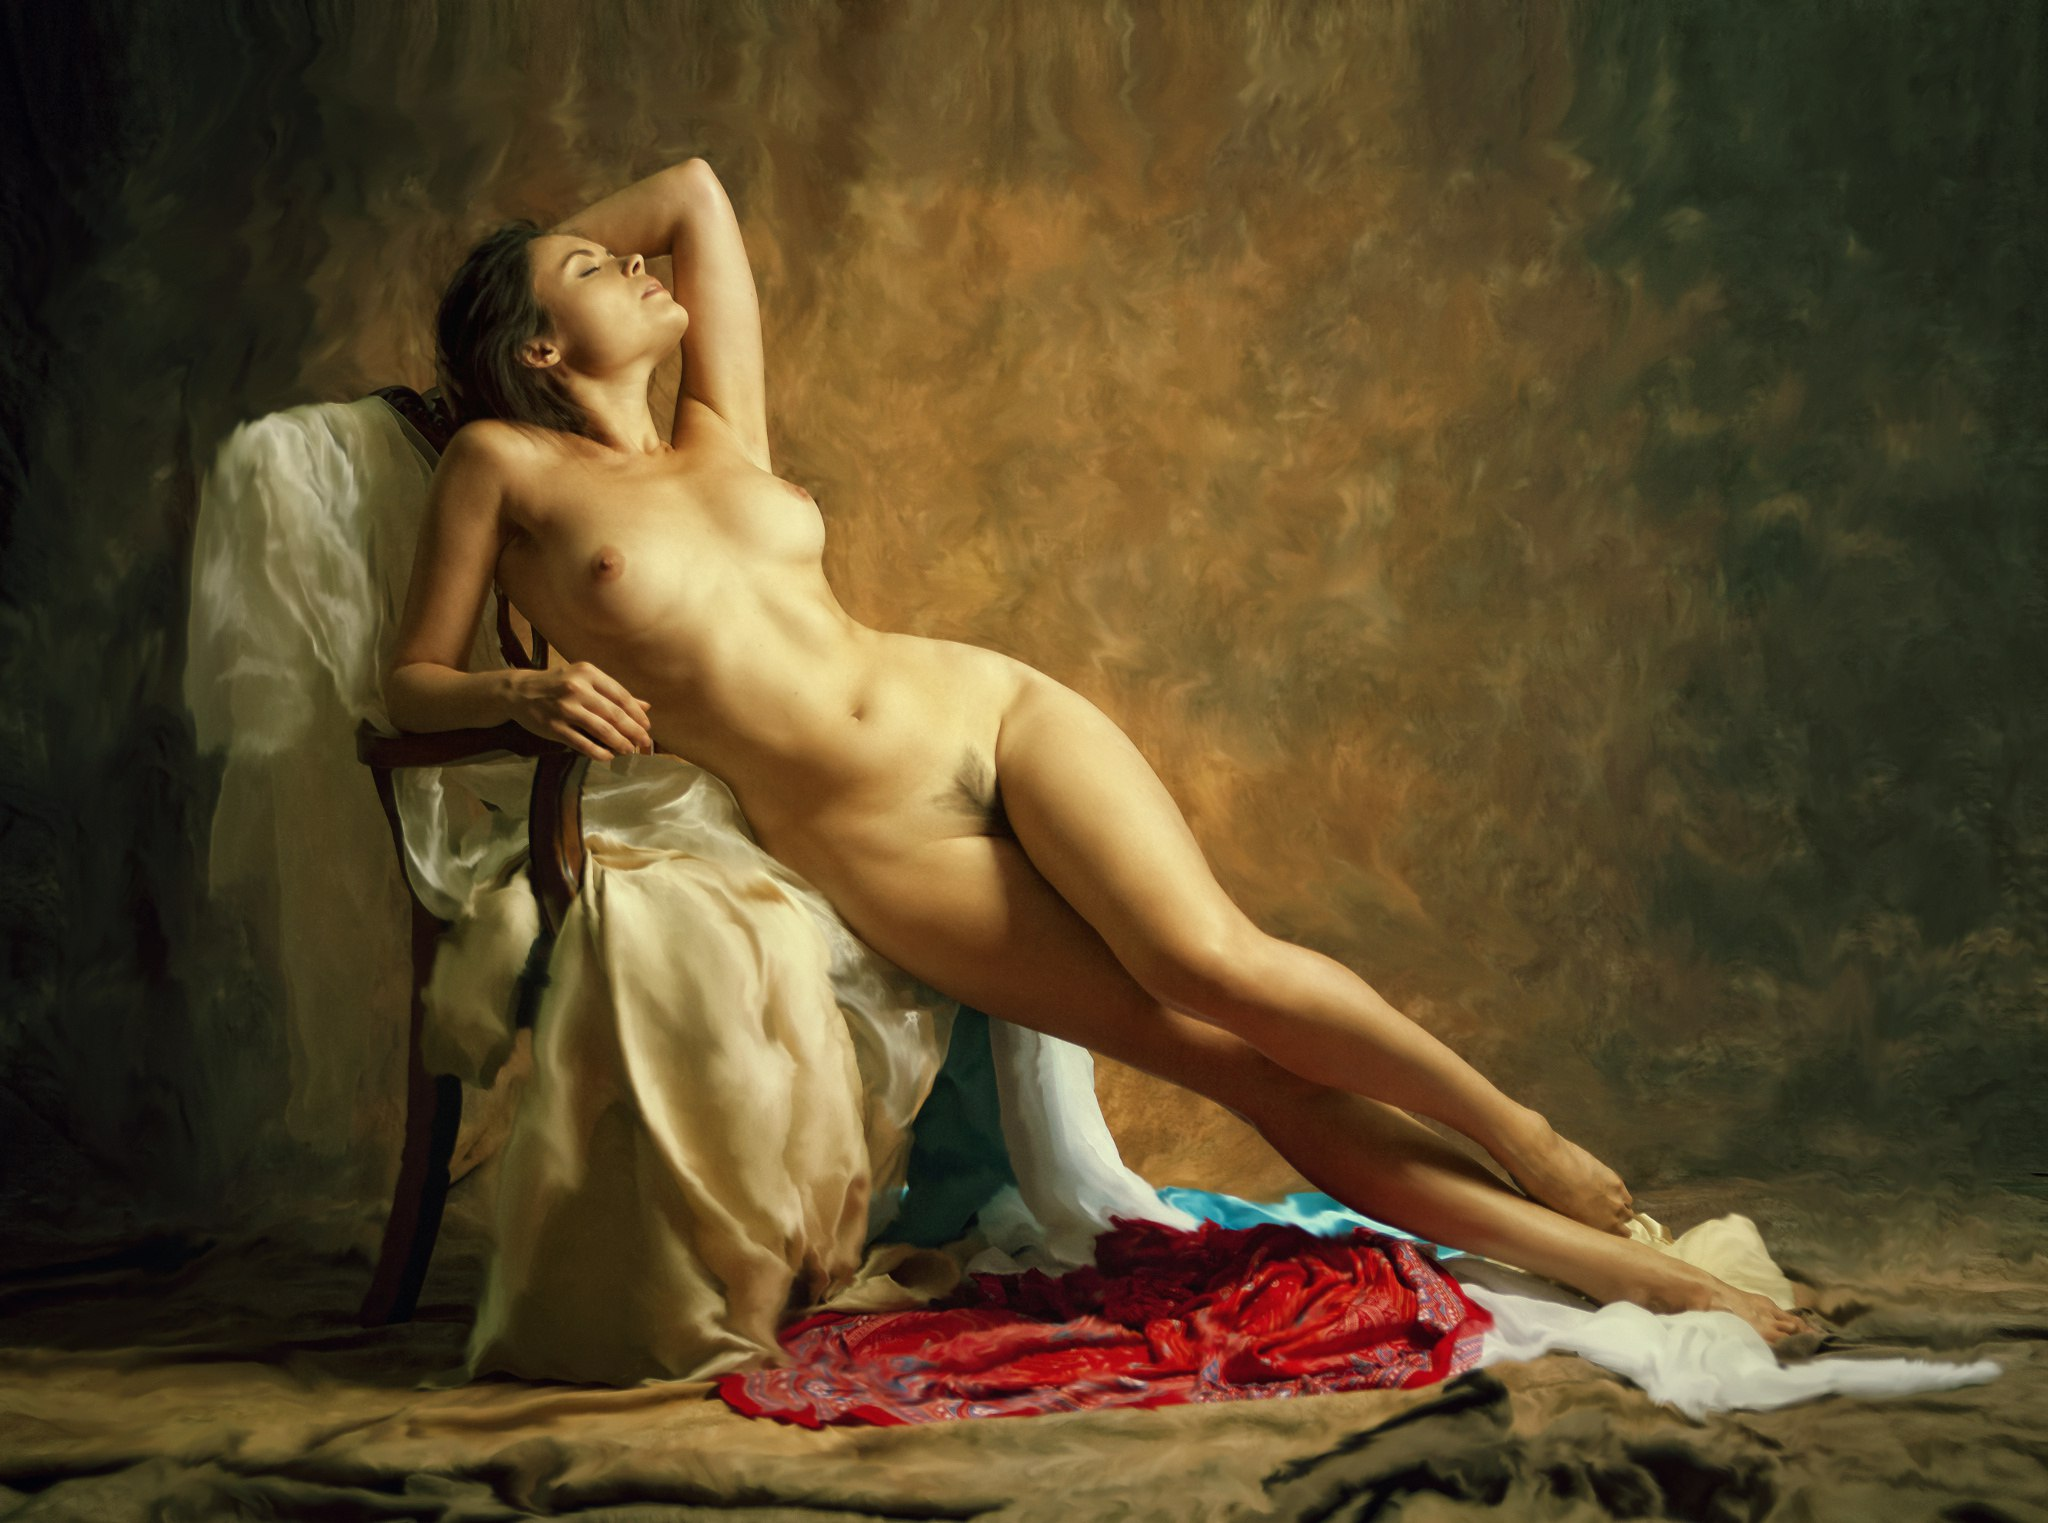 story-nude-girl-art-pictures-chinese